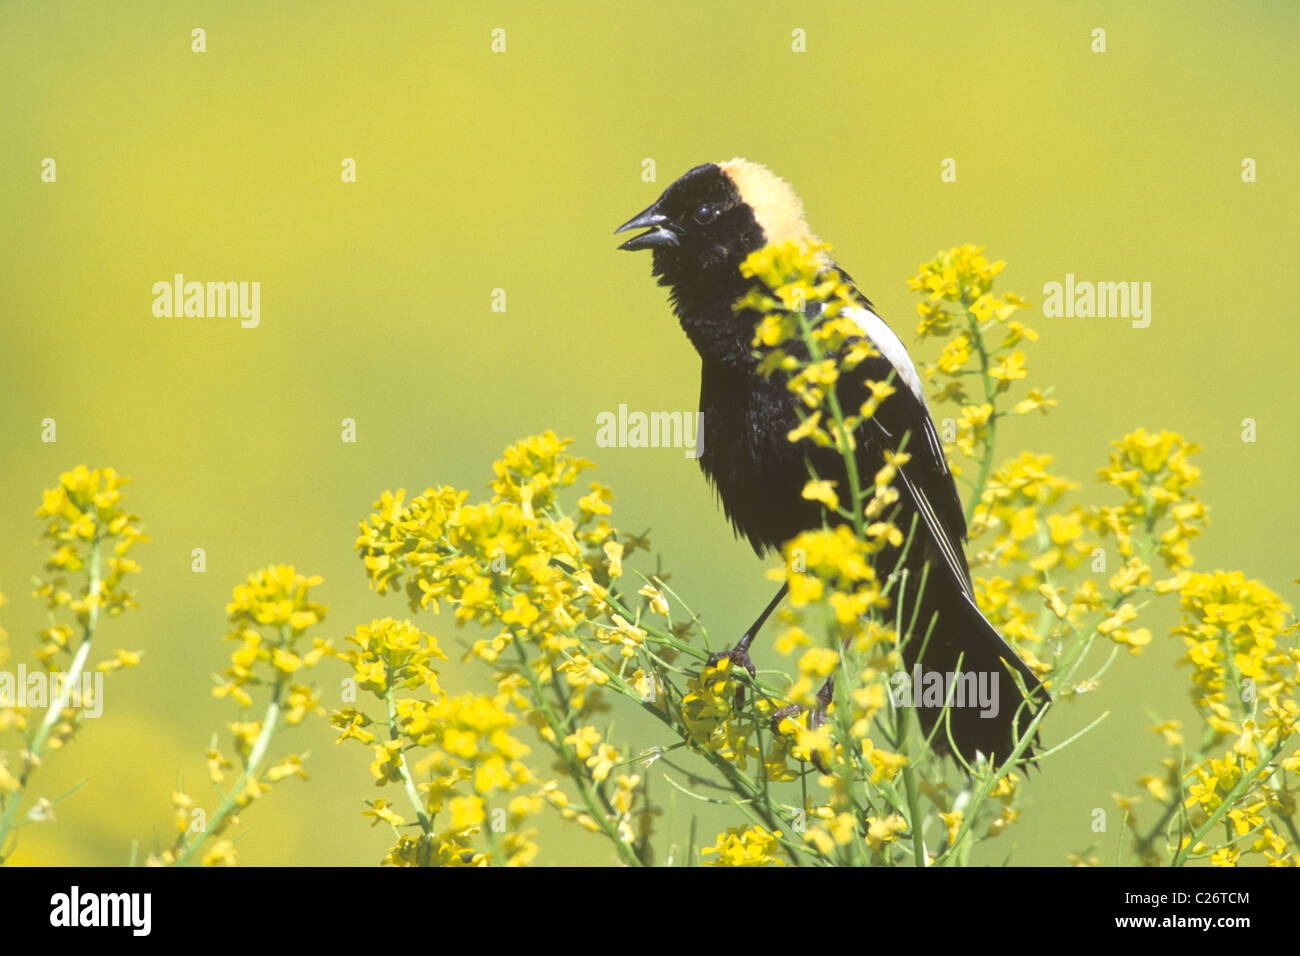 Bobolink perched in Mustard Flowers - Stock Image